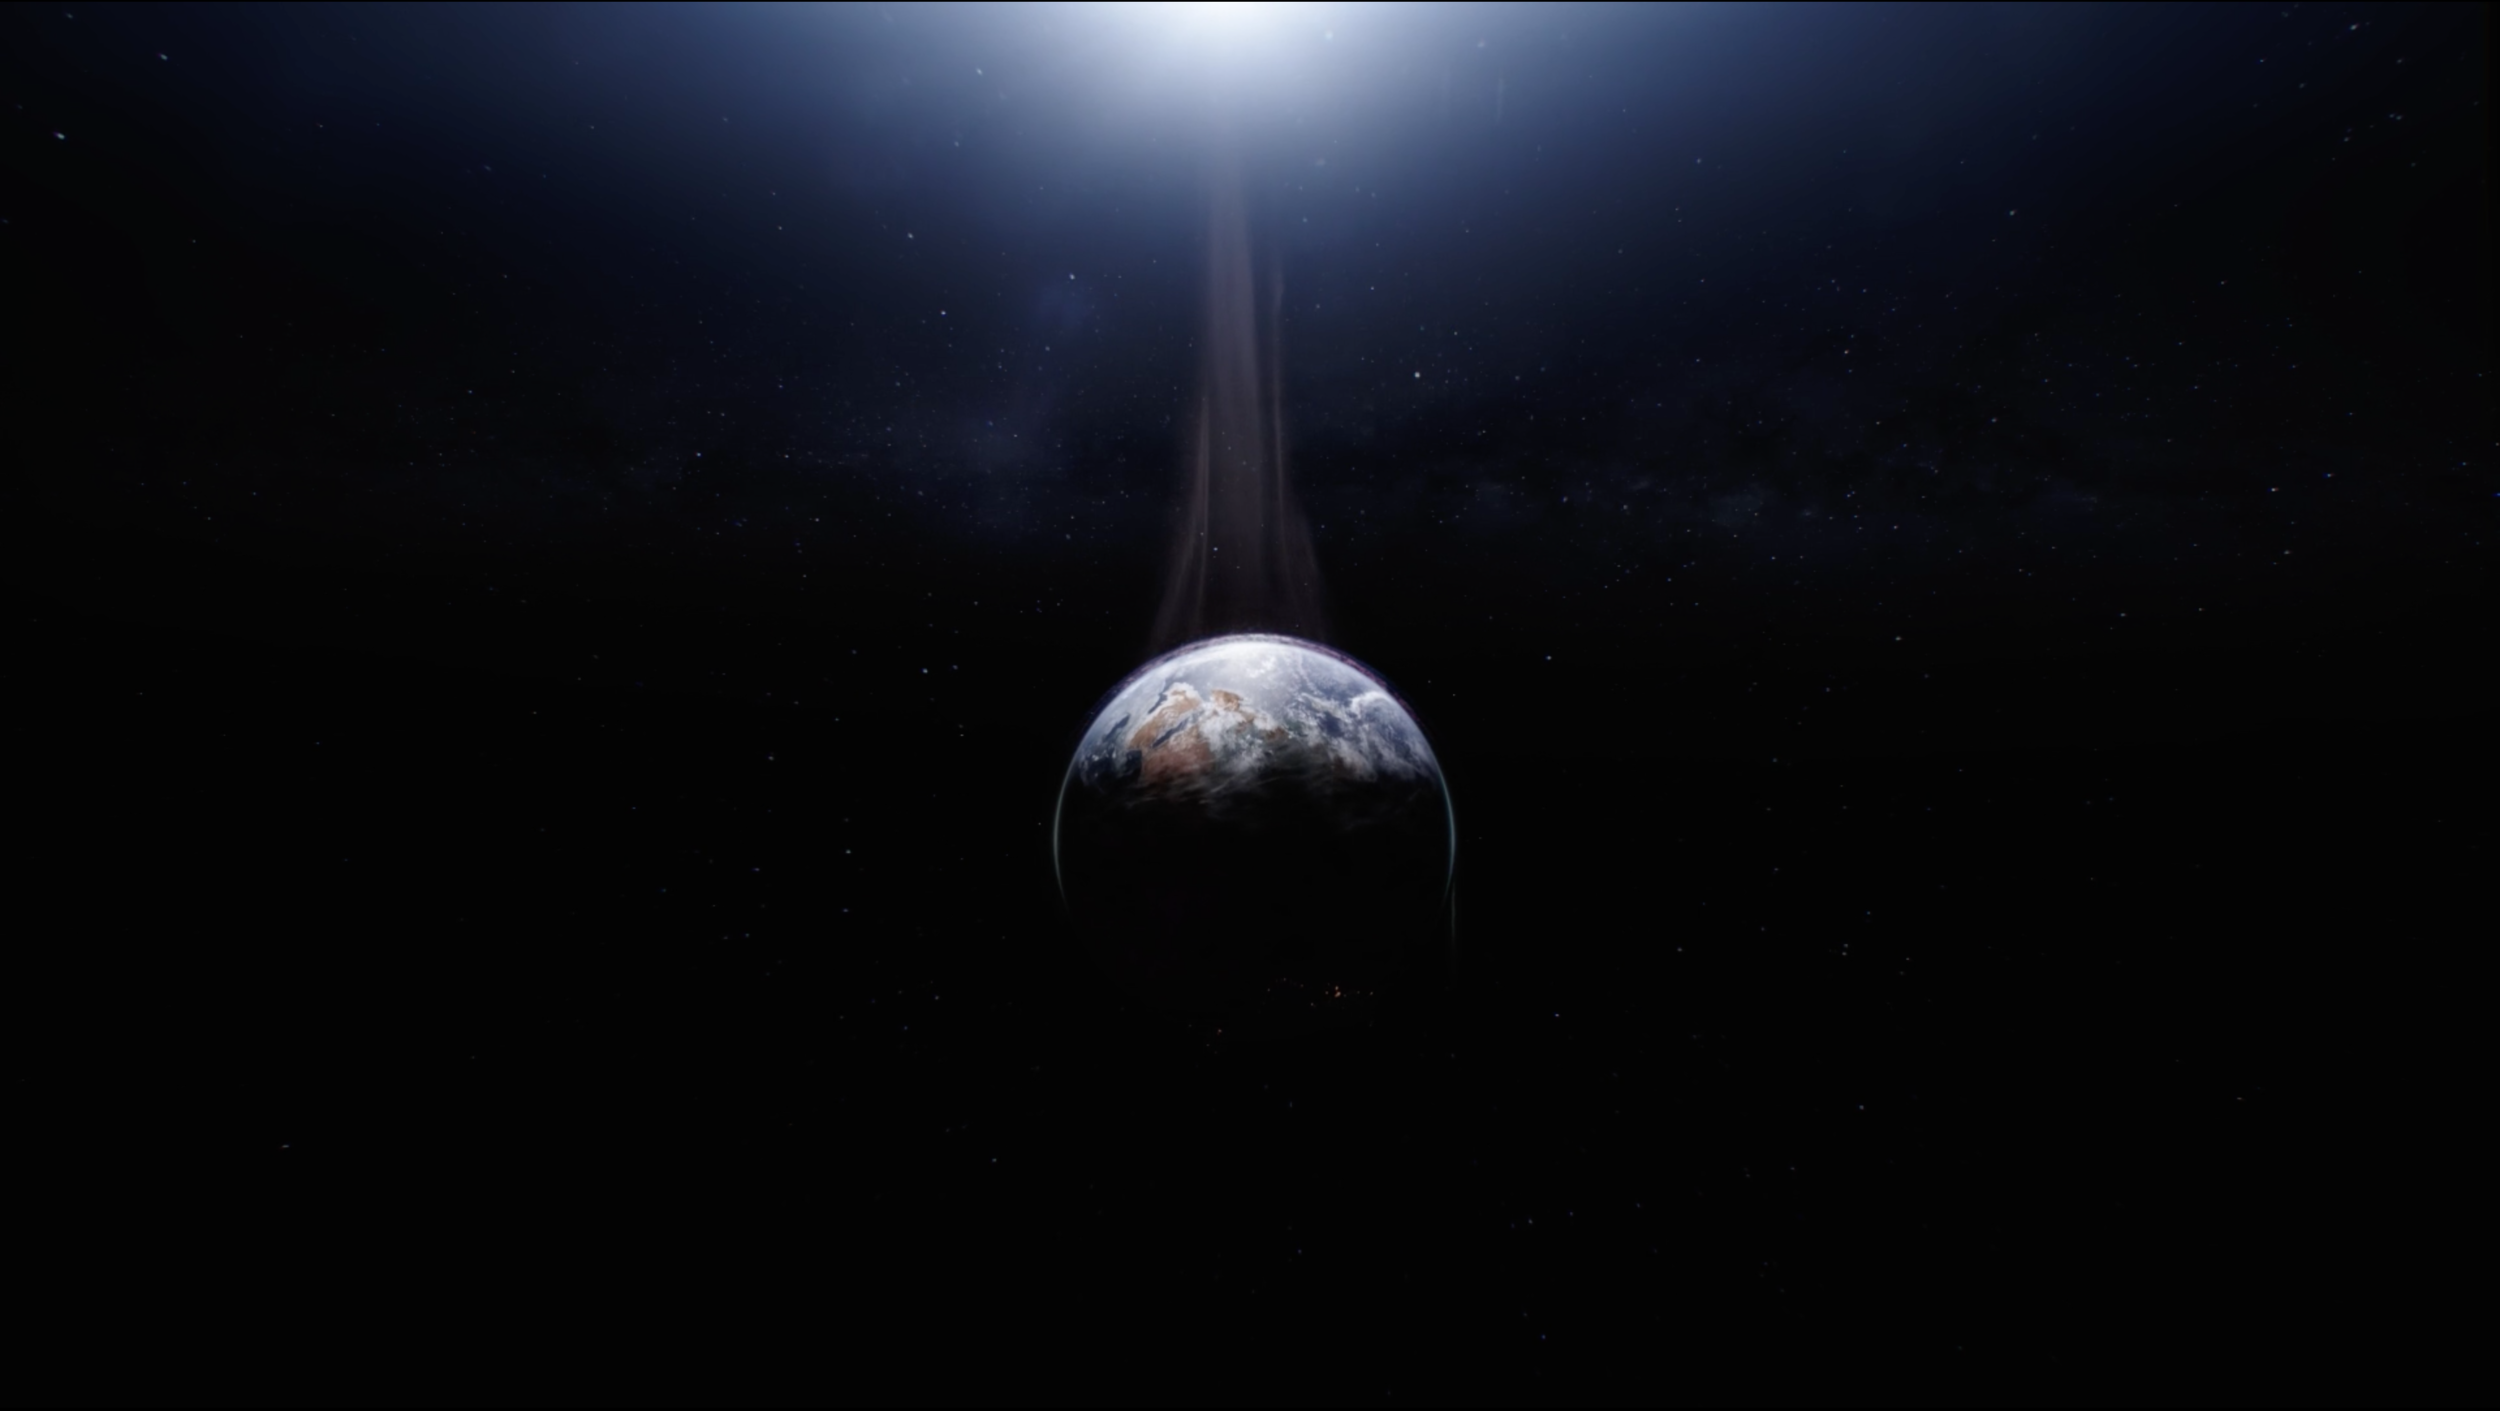 Super_wide_earth.png